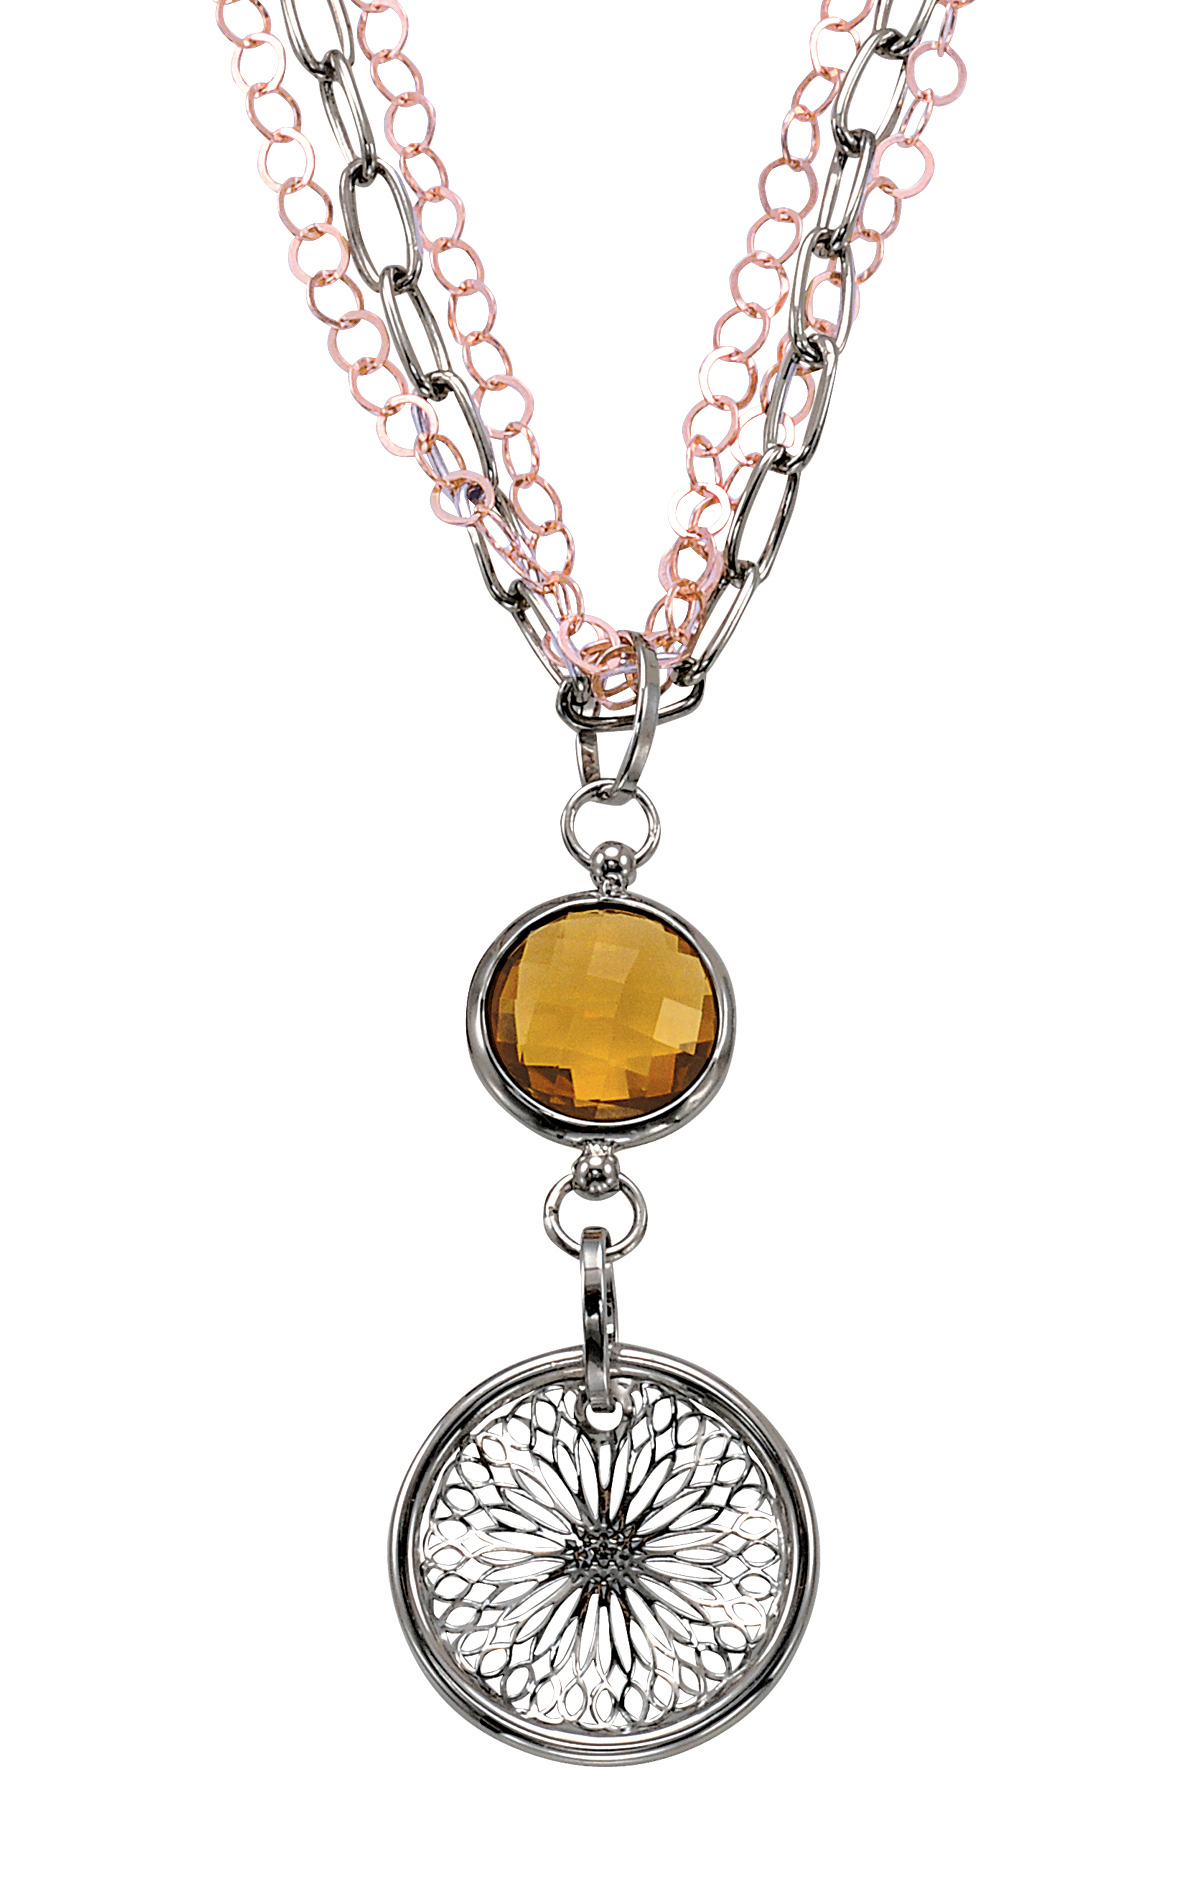 Alesandro Menegati 18K Accented Sterling Silver Honey Quartz Necklace. Price: $286.00